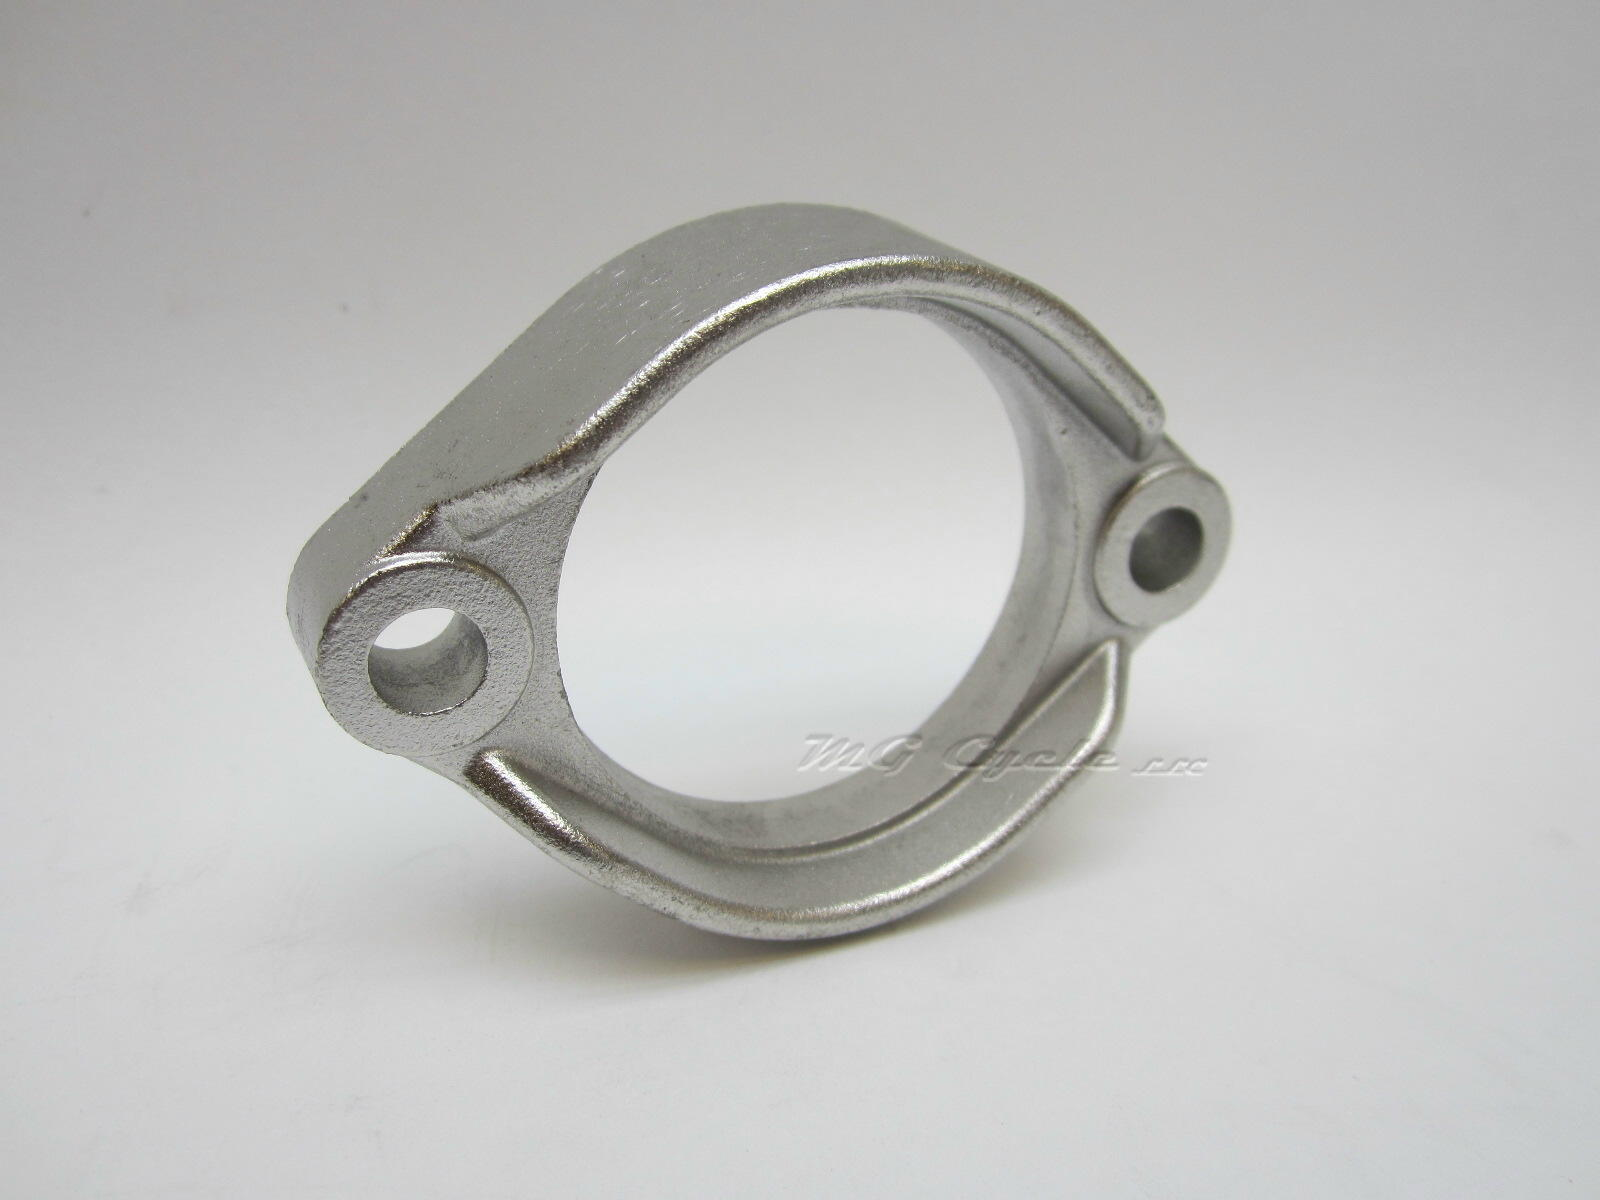 Exhaust flange clamp to head, V11 many models